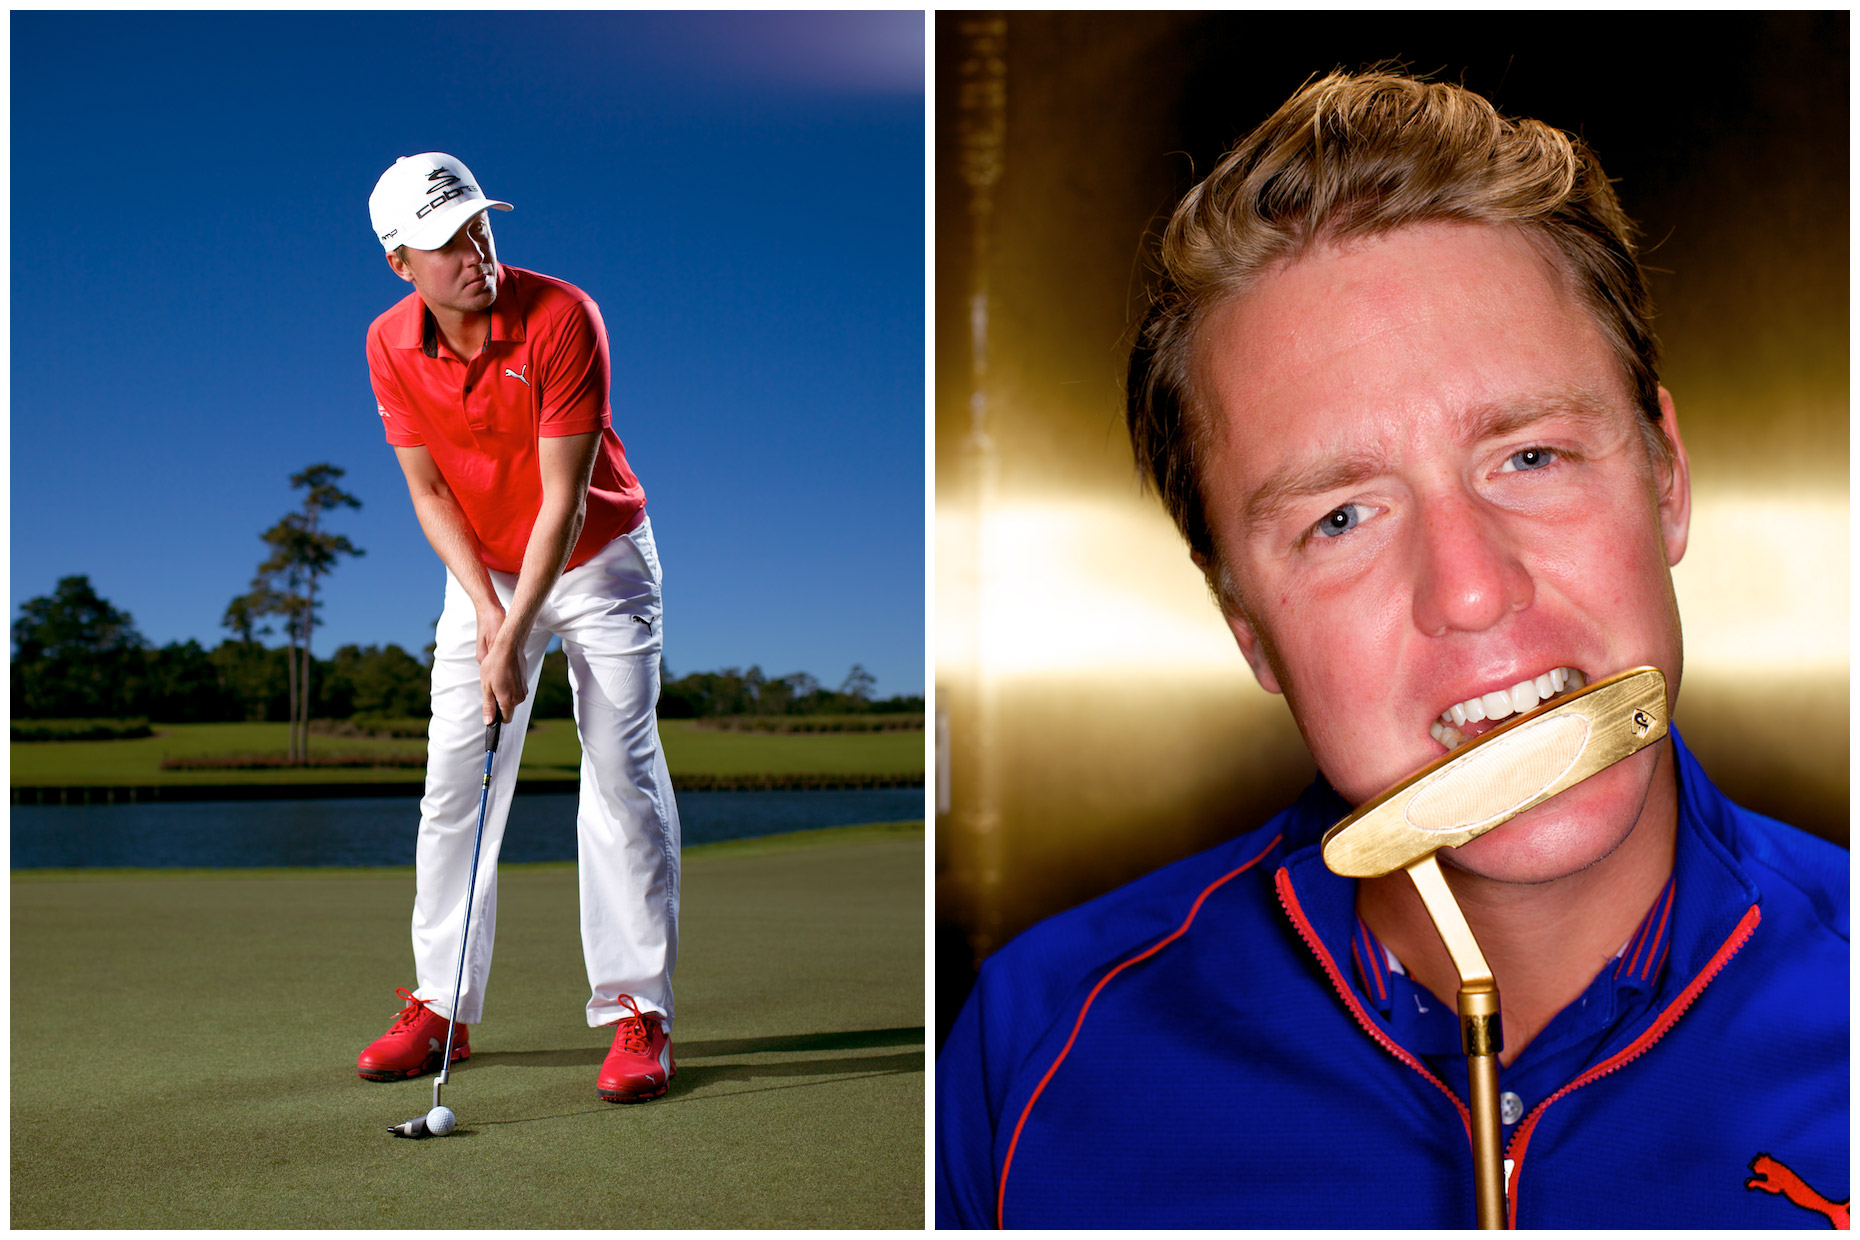 Jonas Blixt, photographed at the TPC Sawgrass in Ponte Vedra, Florida for Svensk Golf.